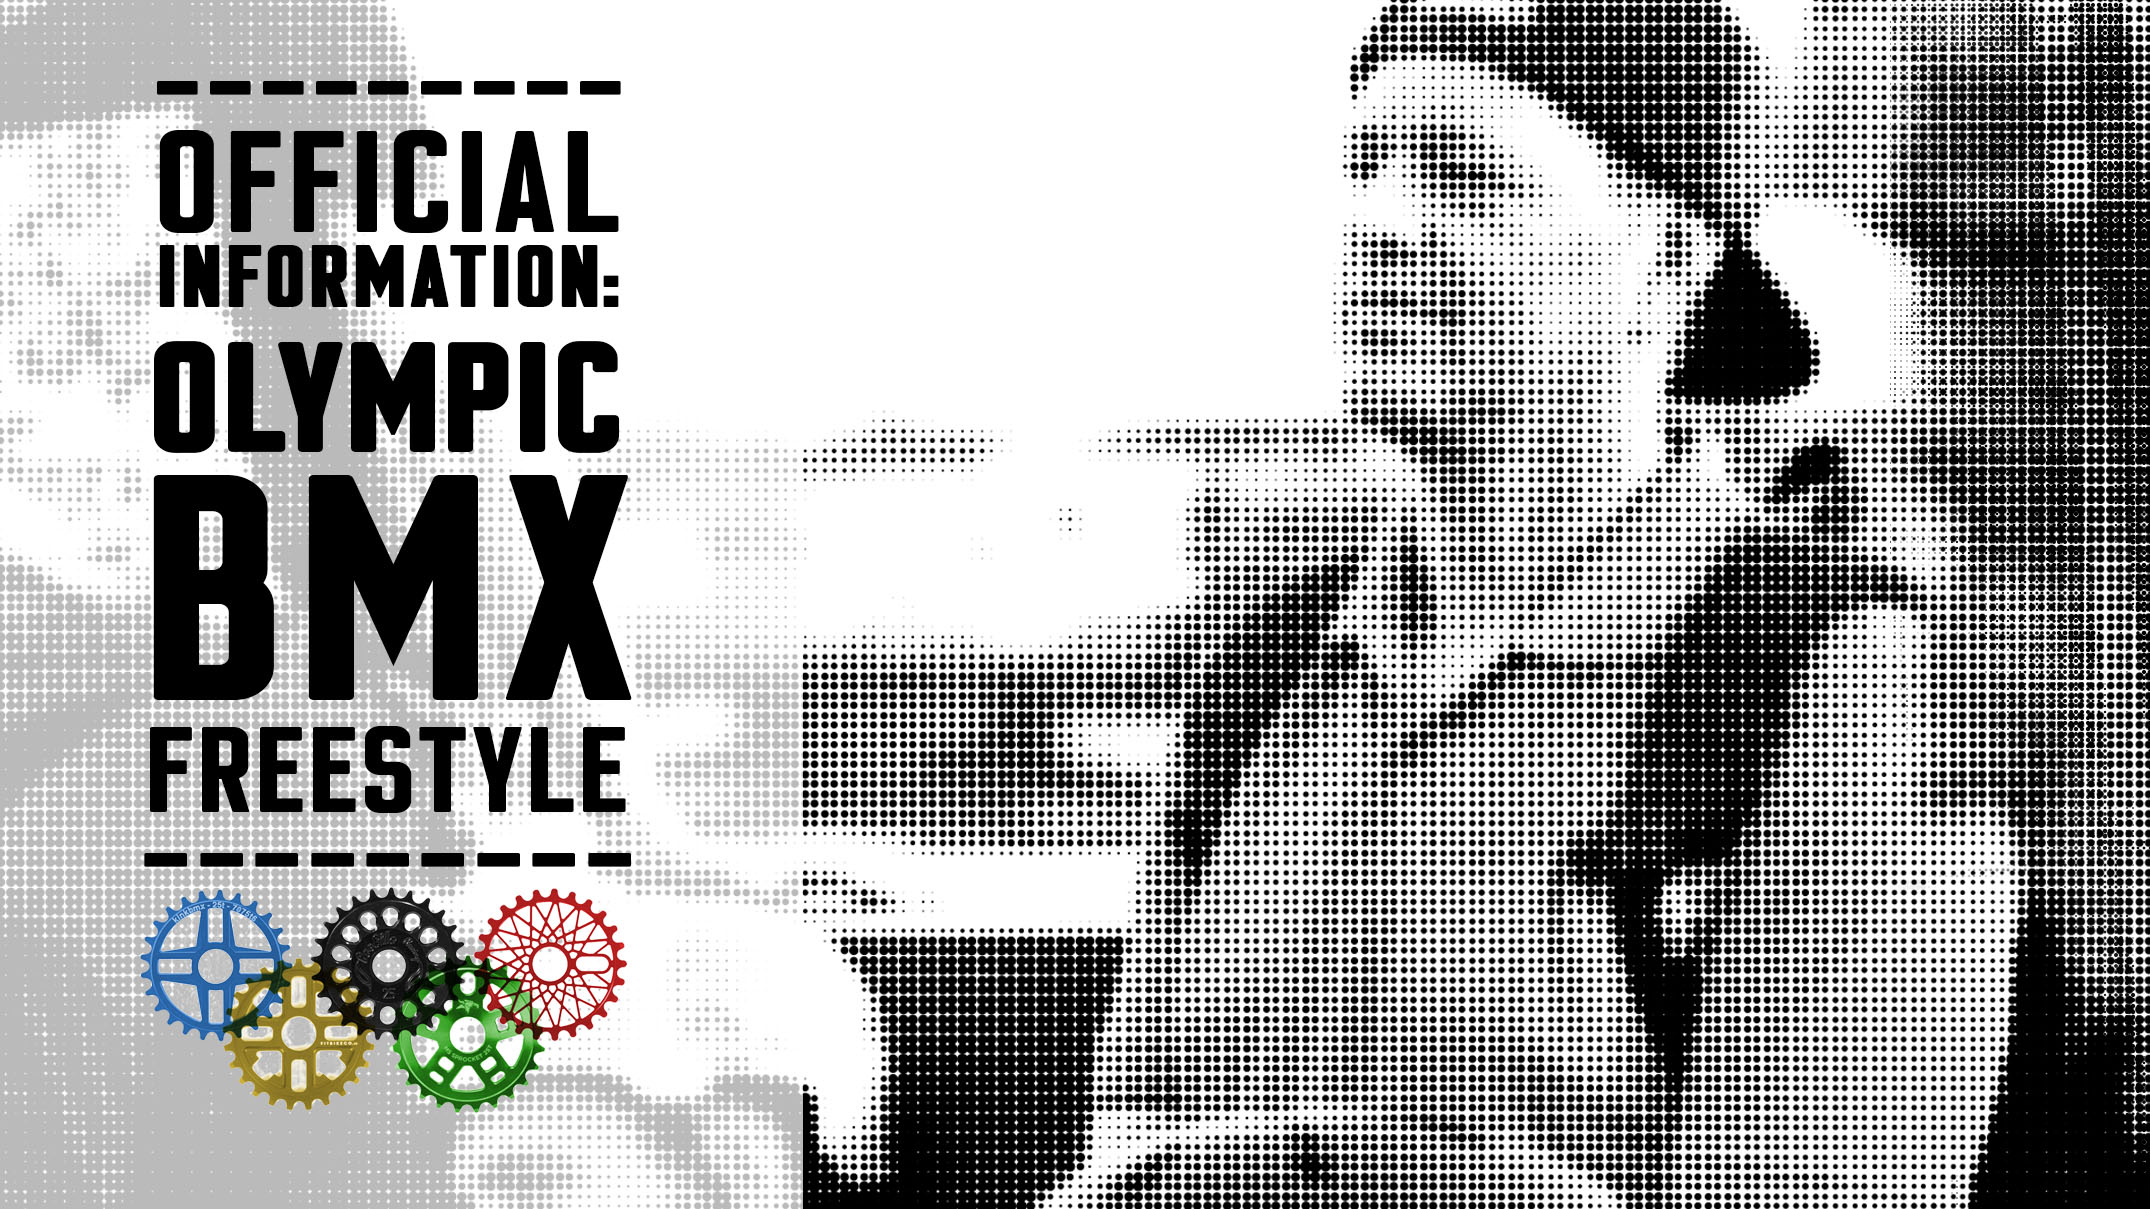 OFFICIAL INFO: Freestyle BMX in the Olympics